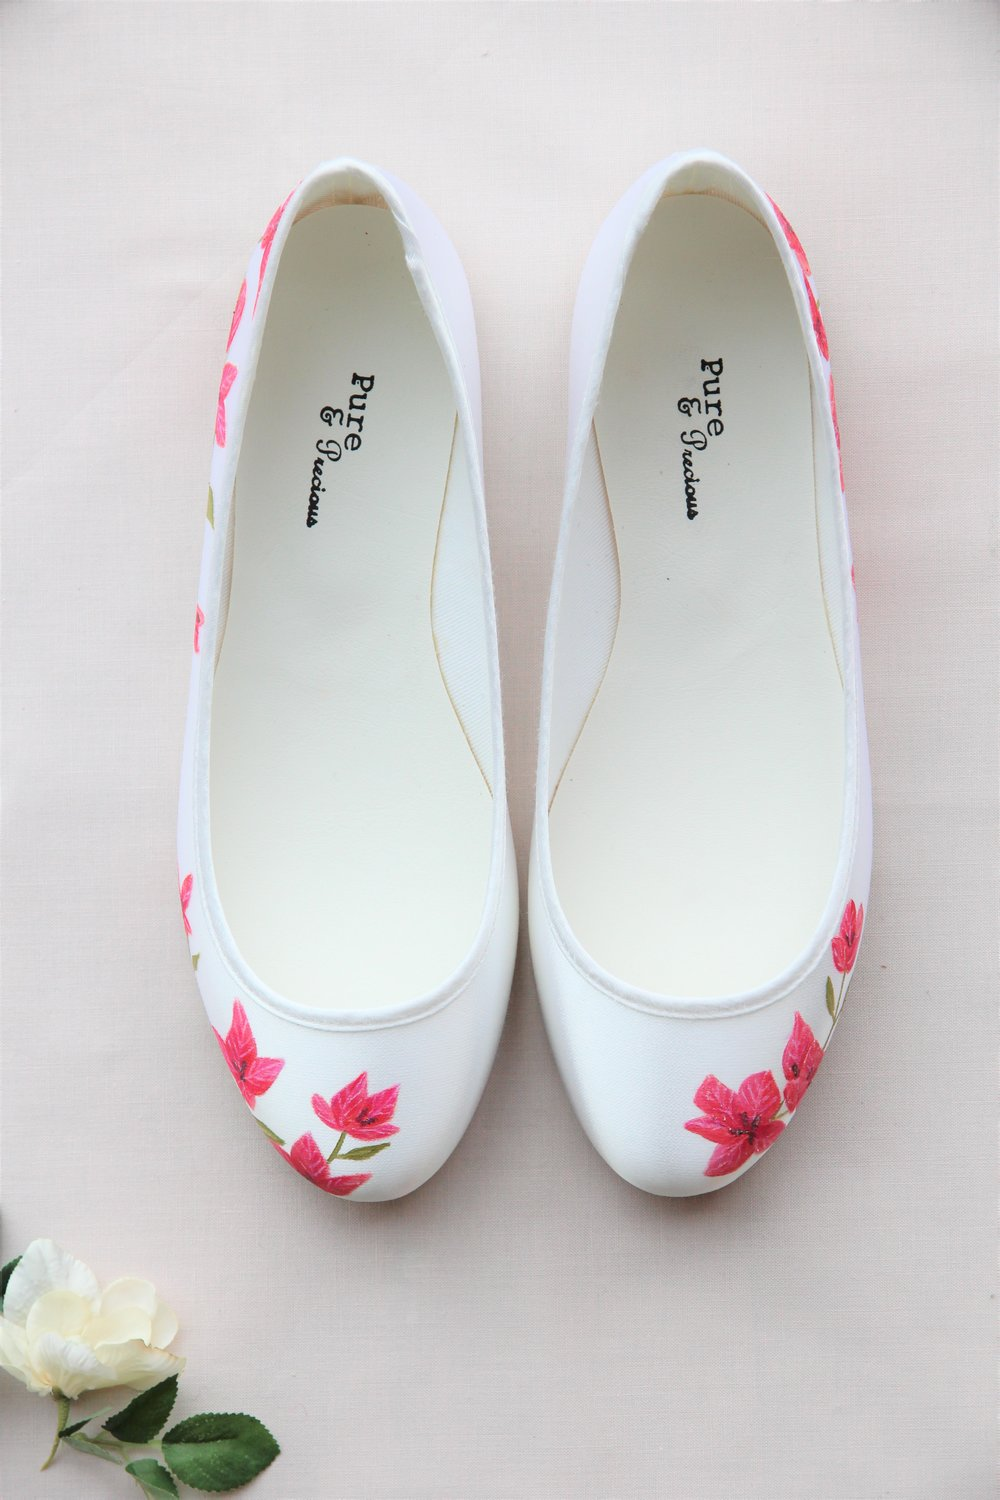 7fb3177c8c5d These white converse style wedding shoes were hand-painted with white  roses